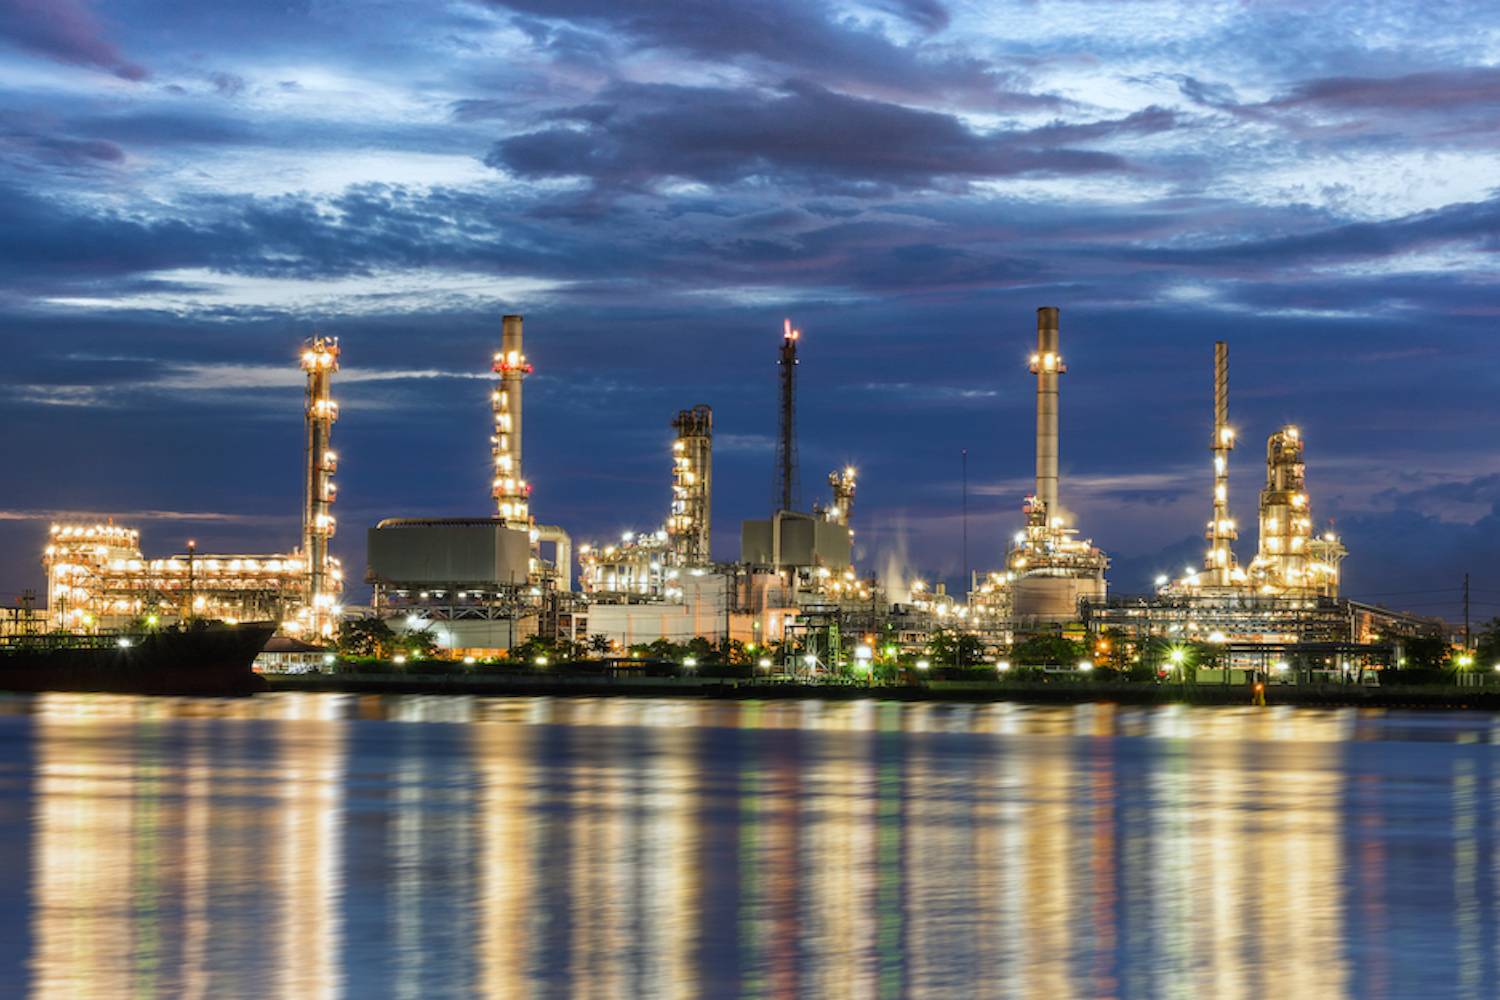 refinery along a river at night